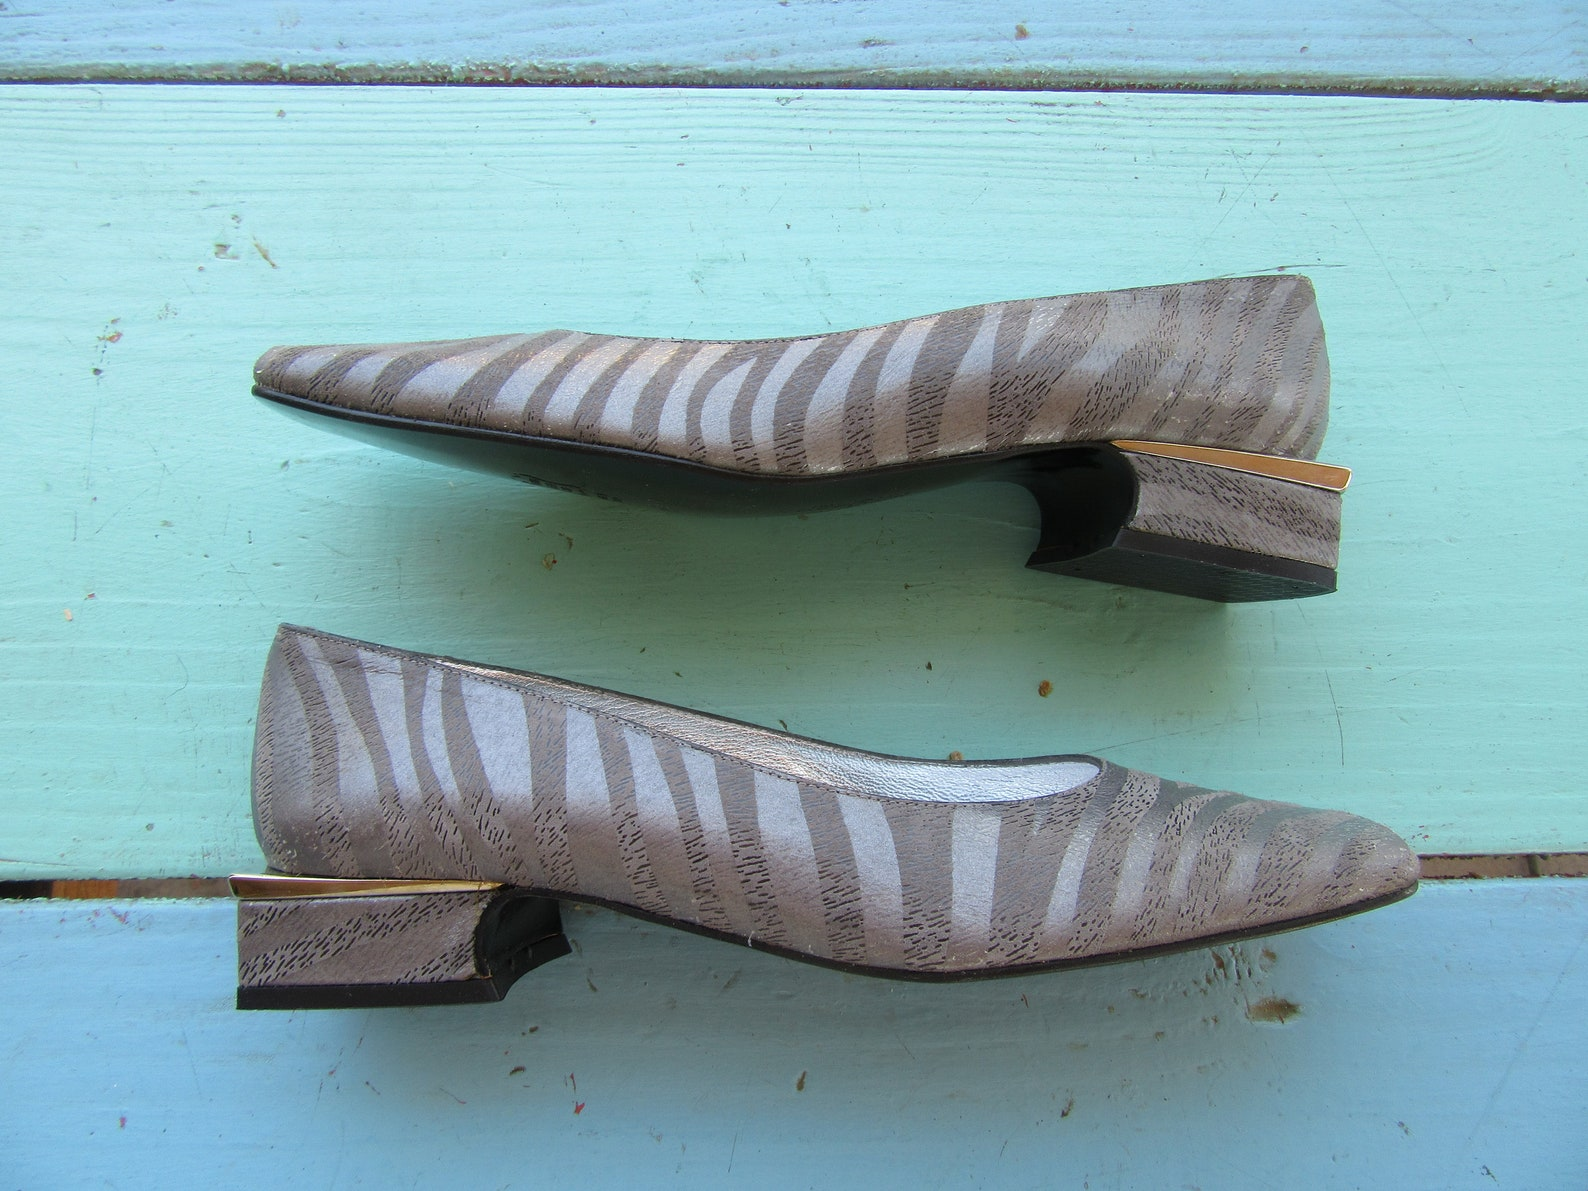 1990s square heel pumps, square heel flats, zebra pumps, ballet flats 90s minimalist, block heels, square toe career pumps, size